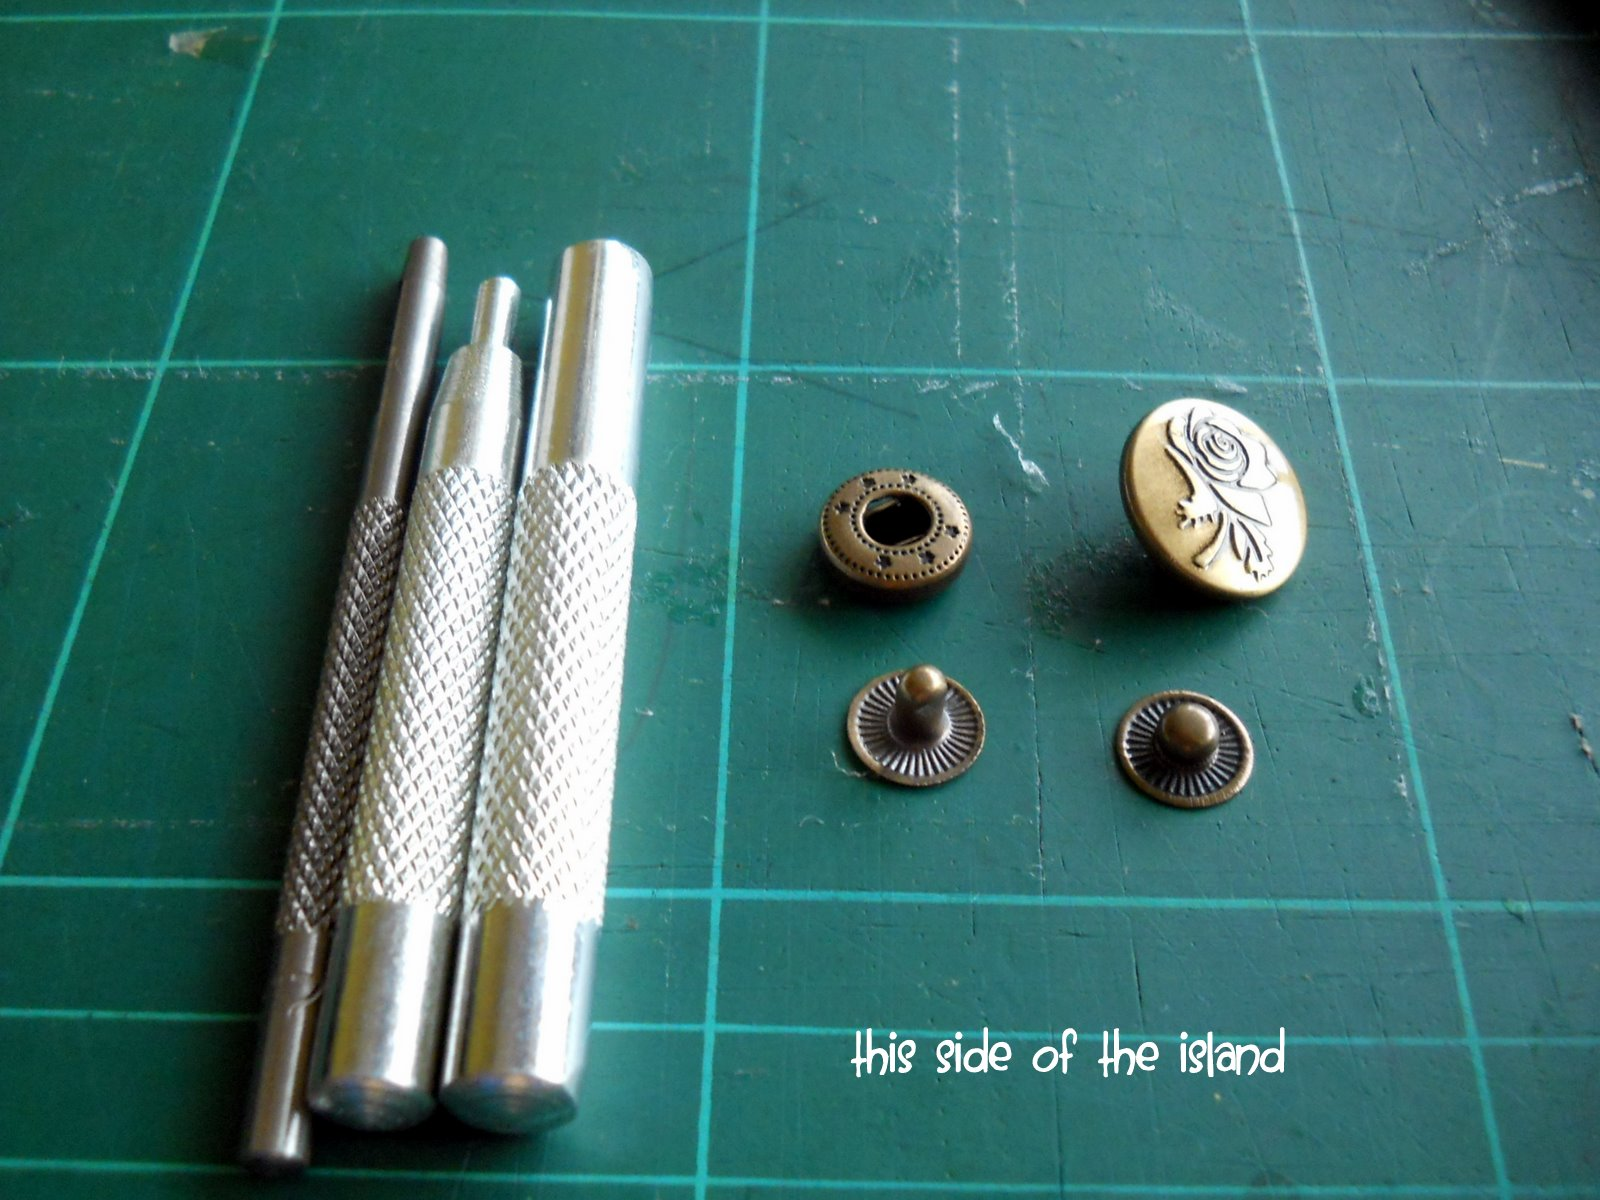 snap fastener tool instructions